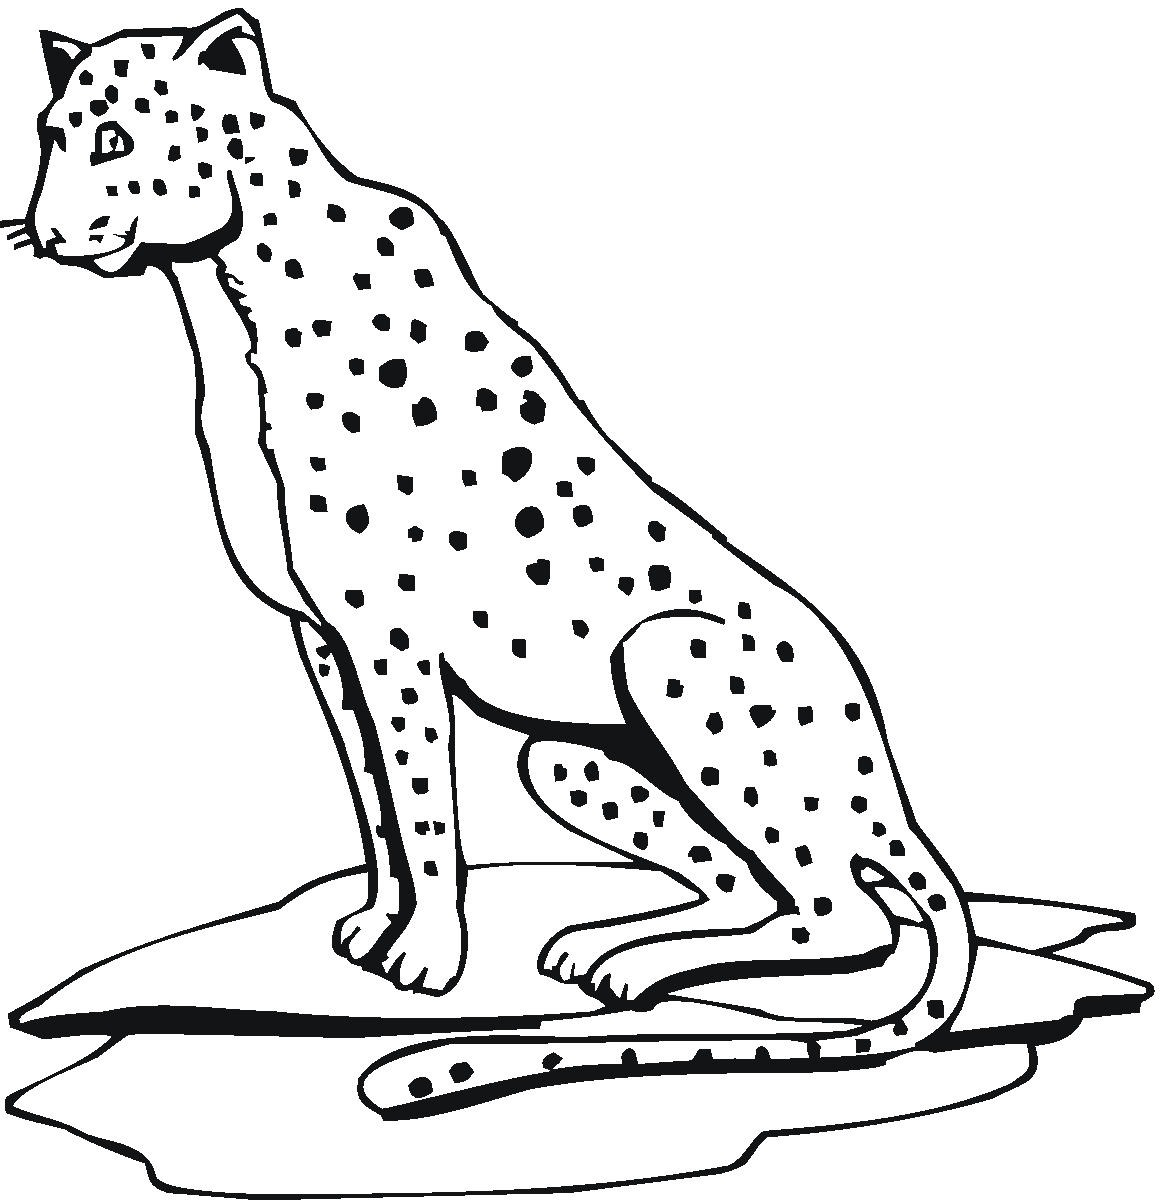 1161x1200 Free Printable Cheetah Coloring Pages For Kids